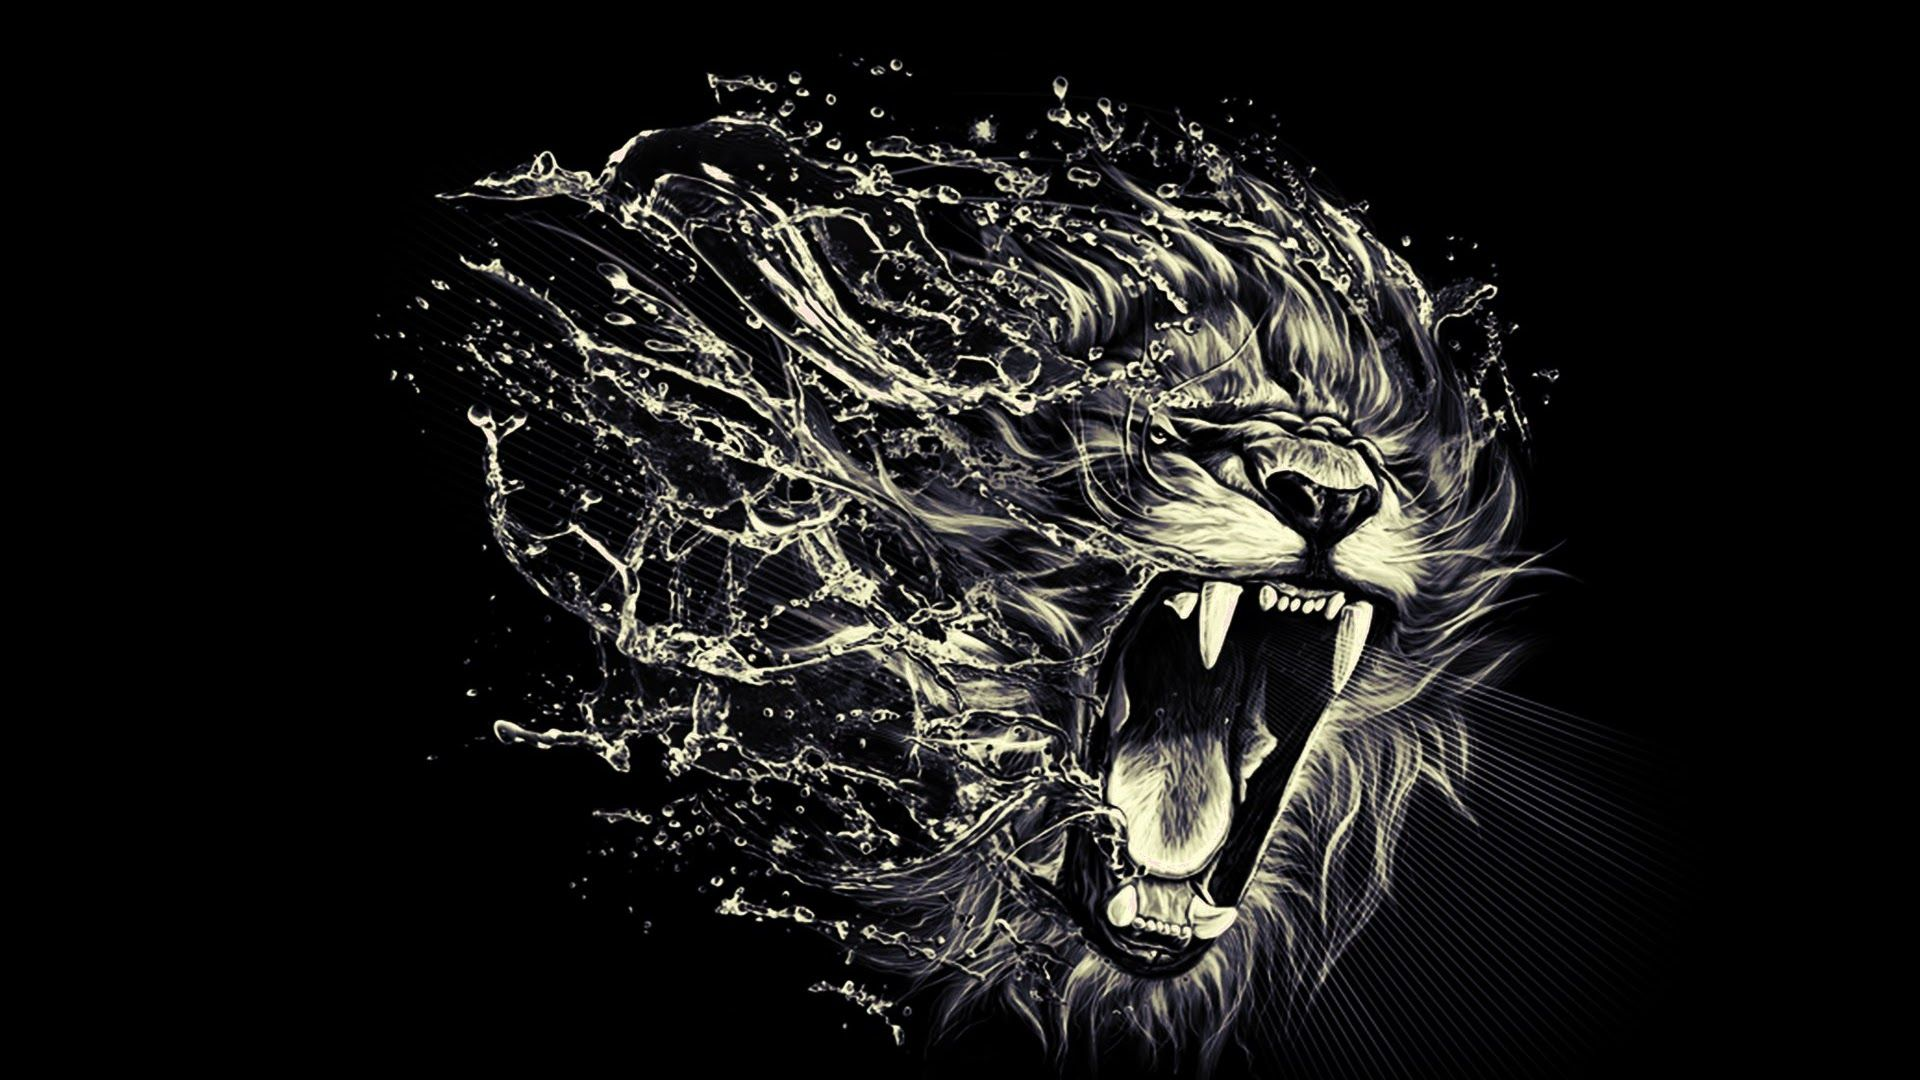 Angry Lion Wallpaper 43 Pictures In 2020 Art Lion Tattoo Lion Wallpaper